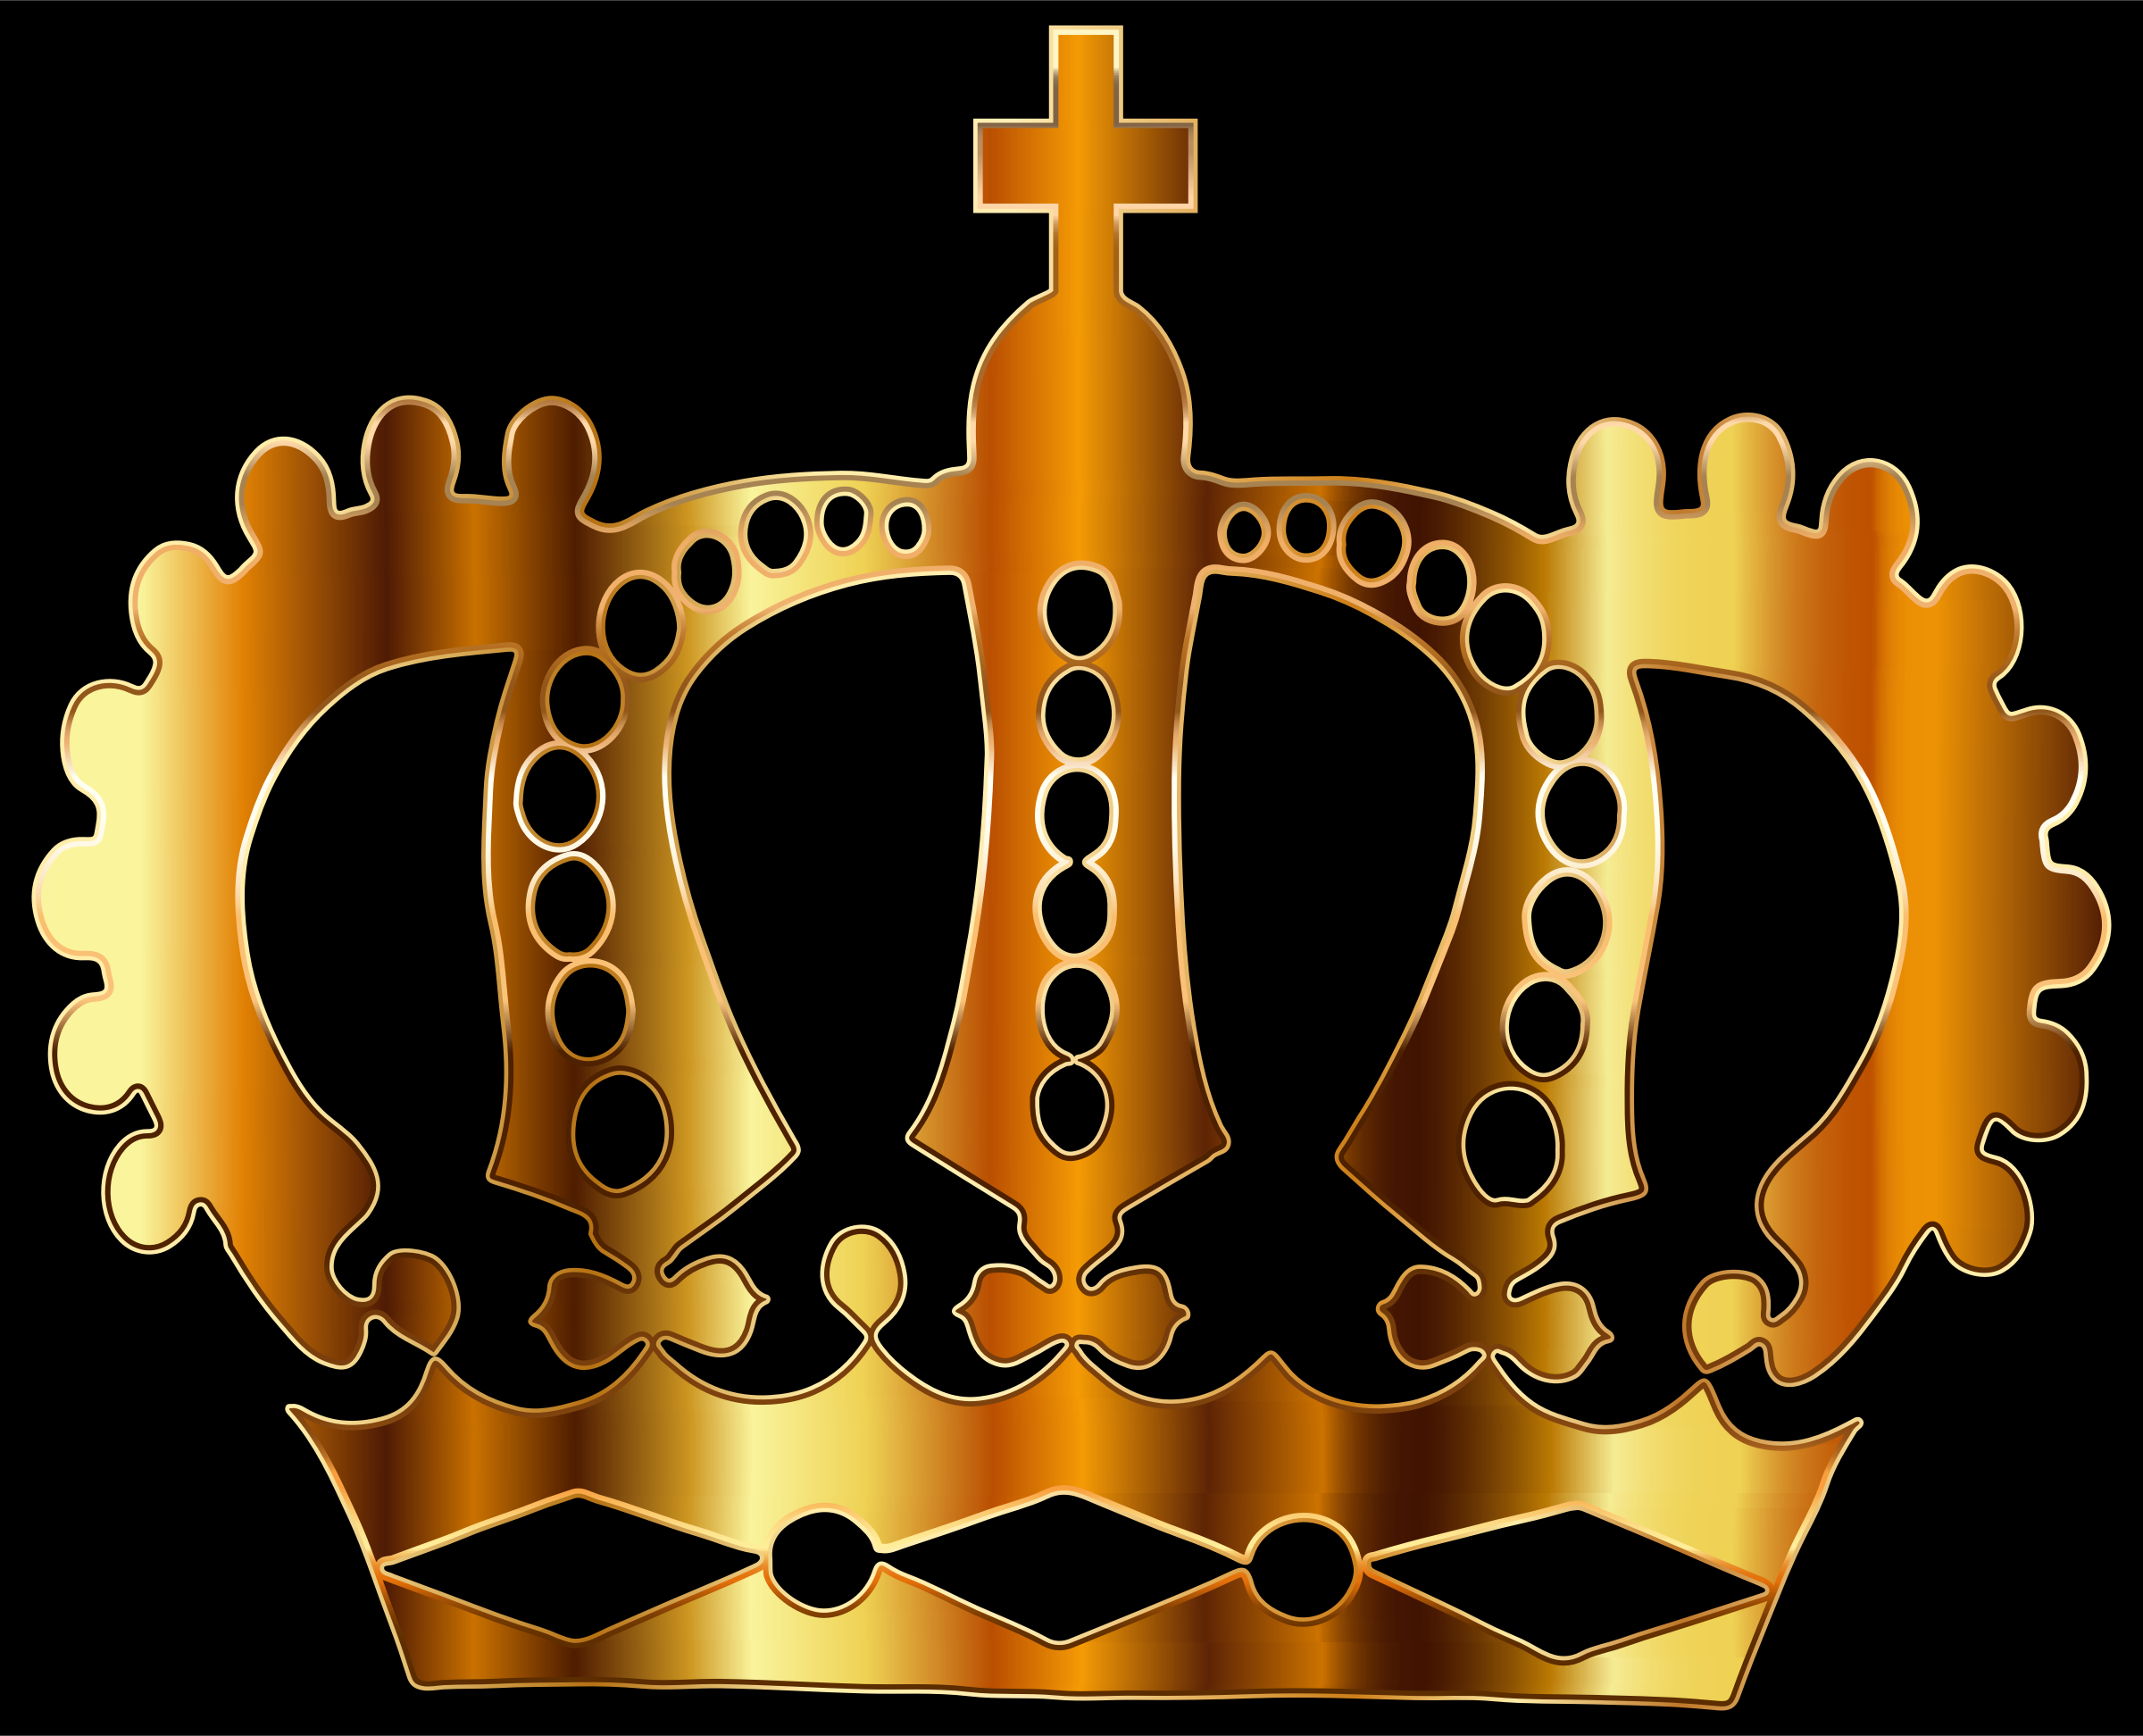 Gold Royal Crown Silhouette by GDJ